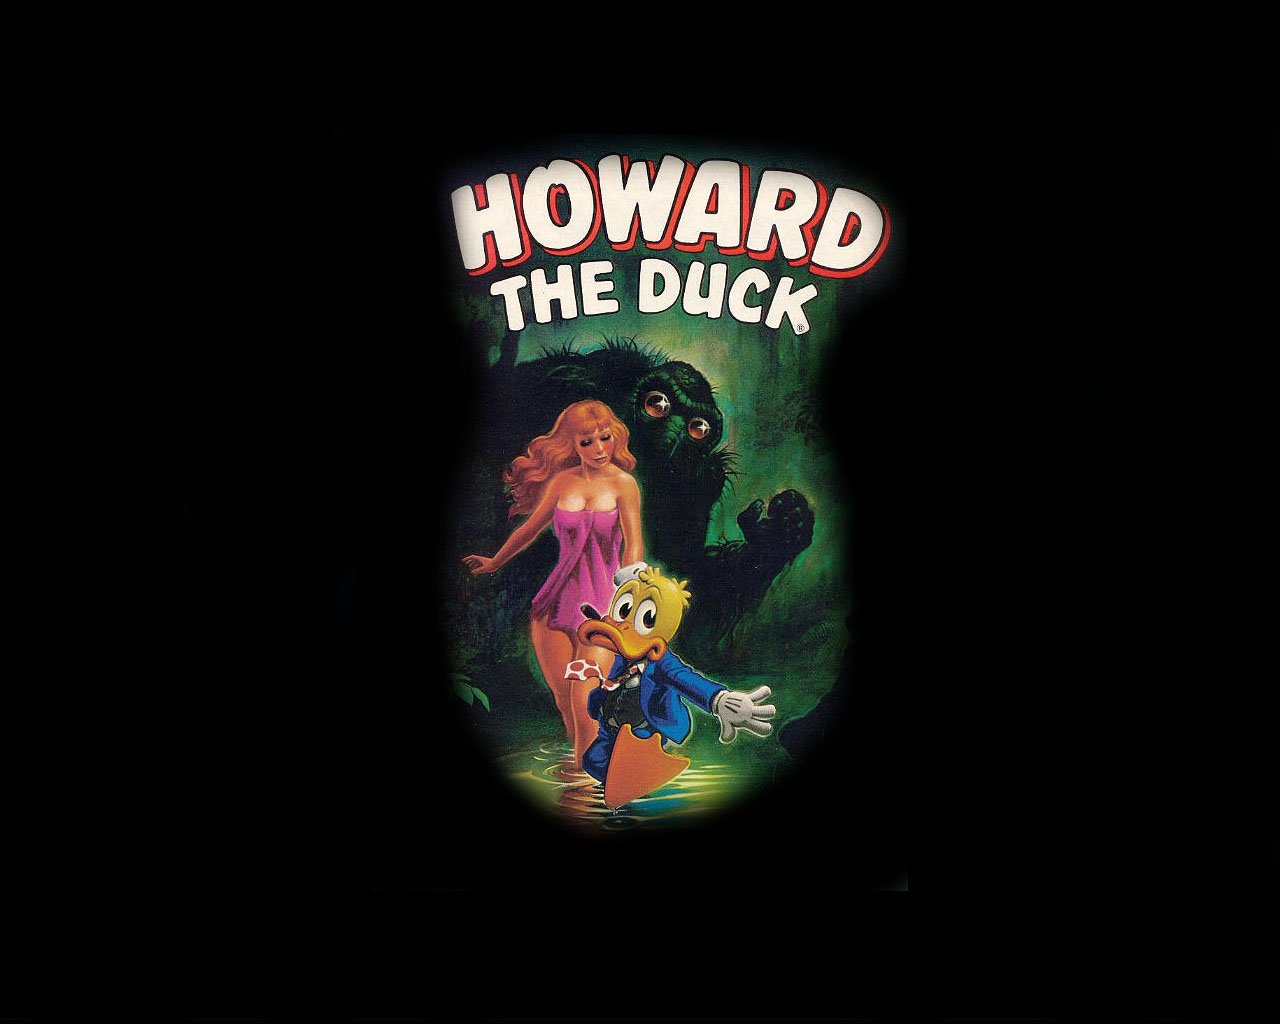 Howard Wallpaper and Background Image 1280x1024 ID98080 1280x1024